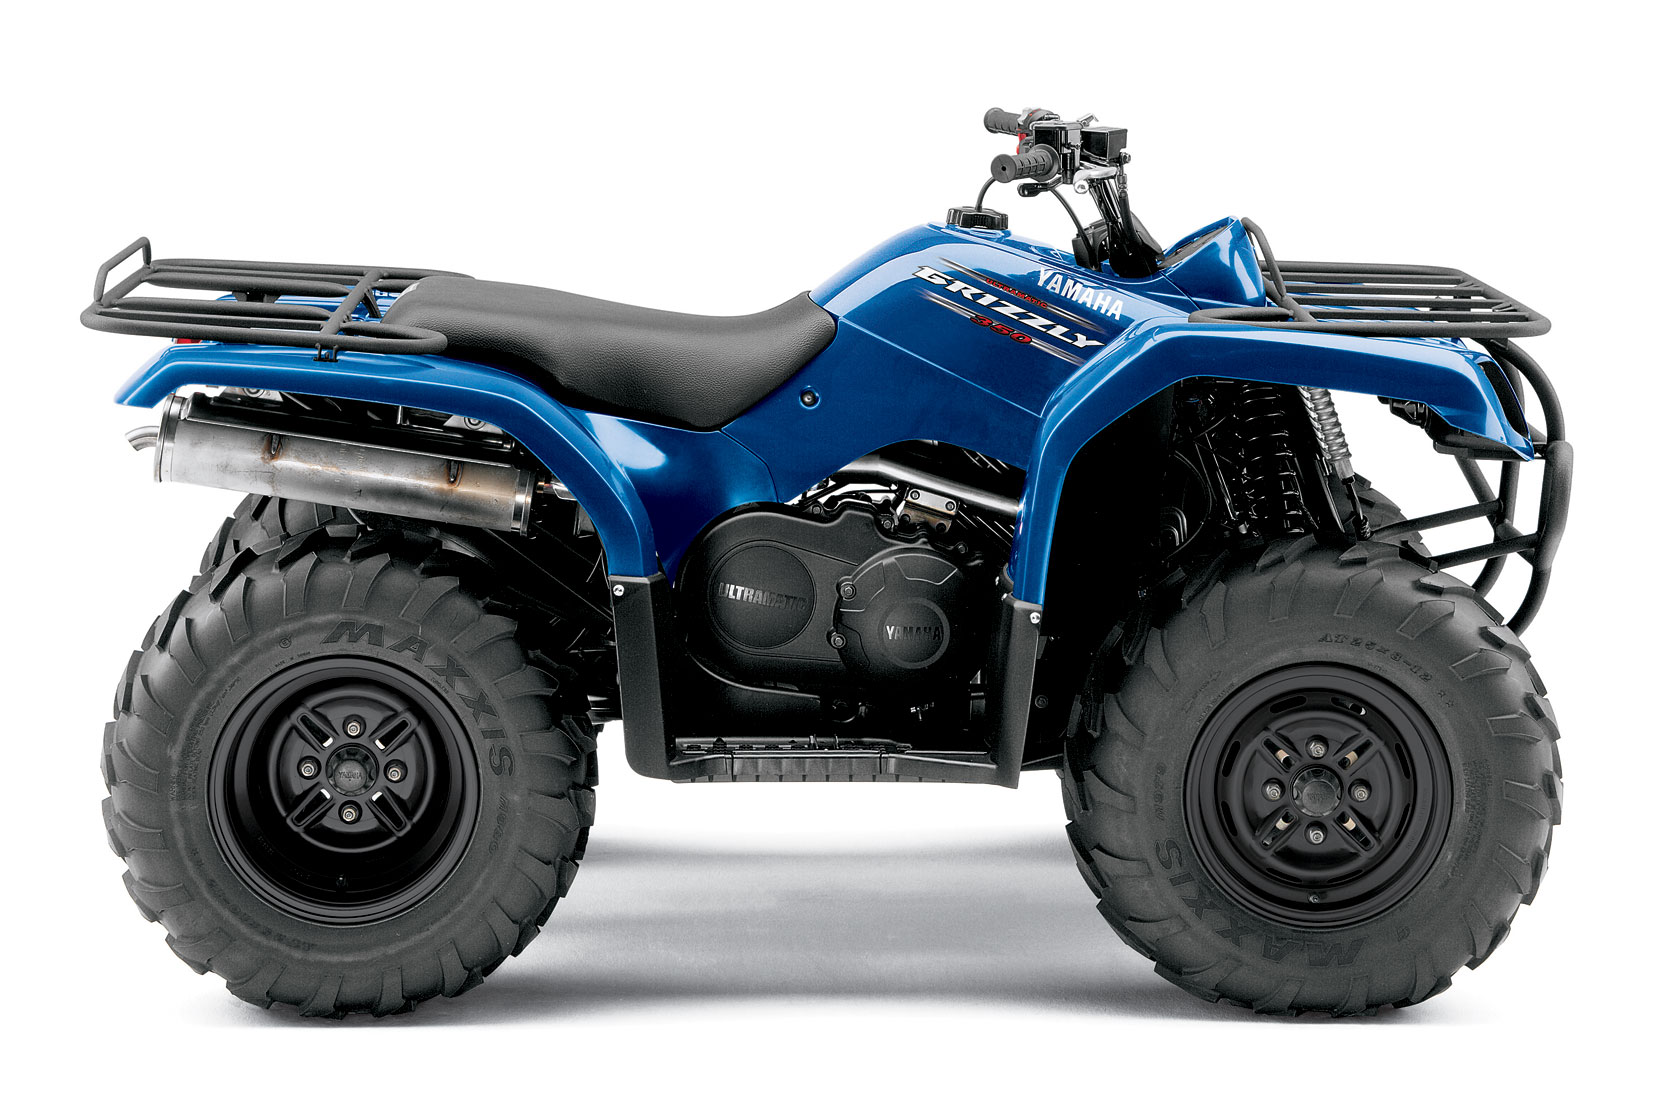 Yamaha grizzly 350 4x4 specs 2010 2011 autoevolution for Yamaha 350 grizzly